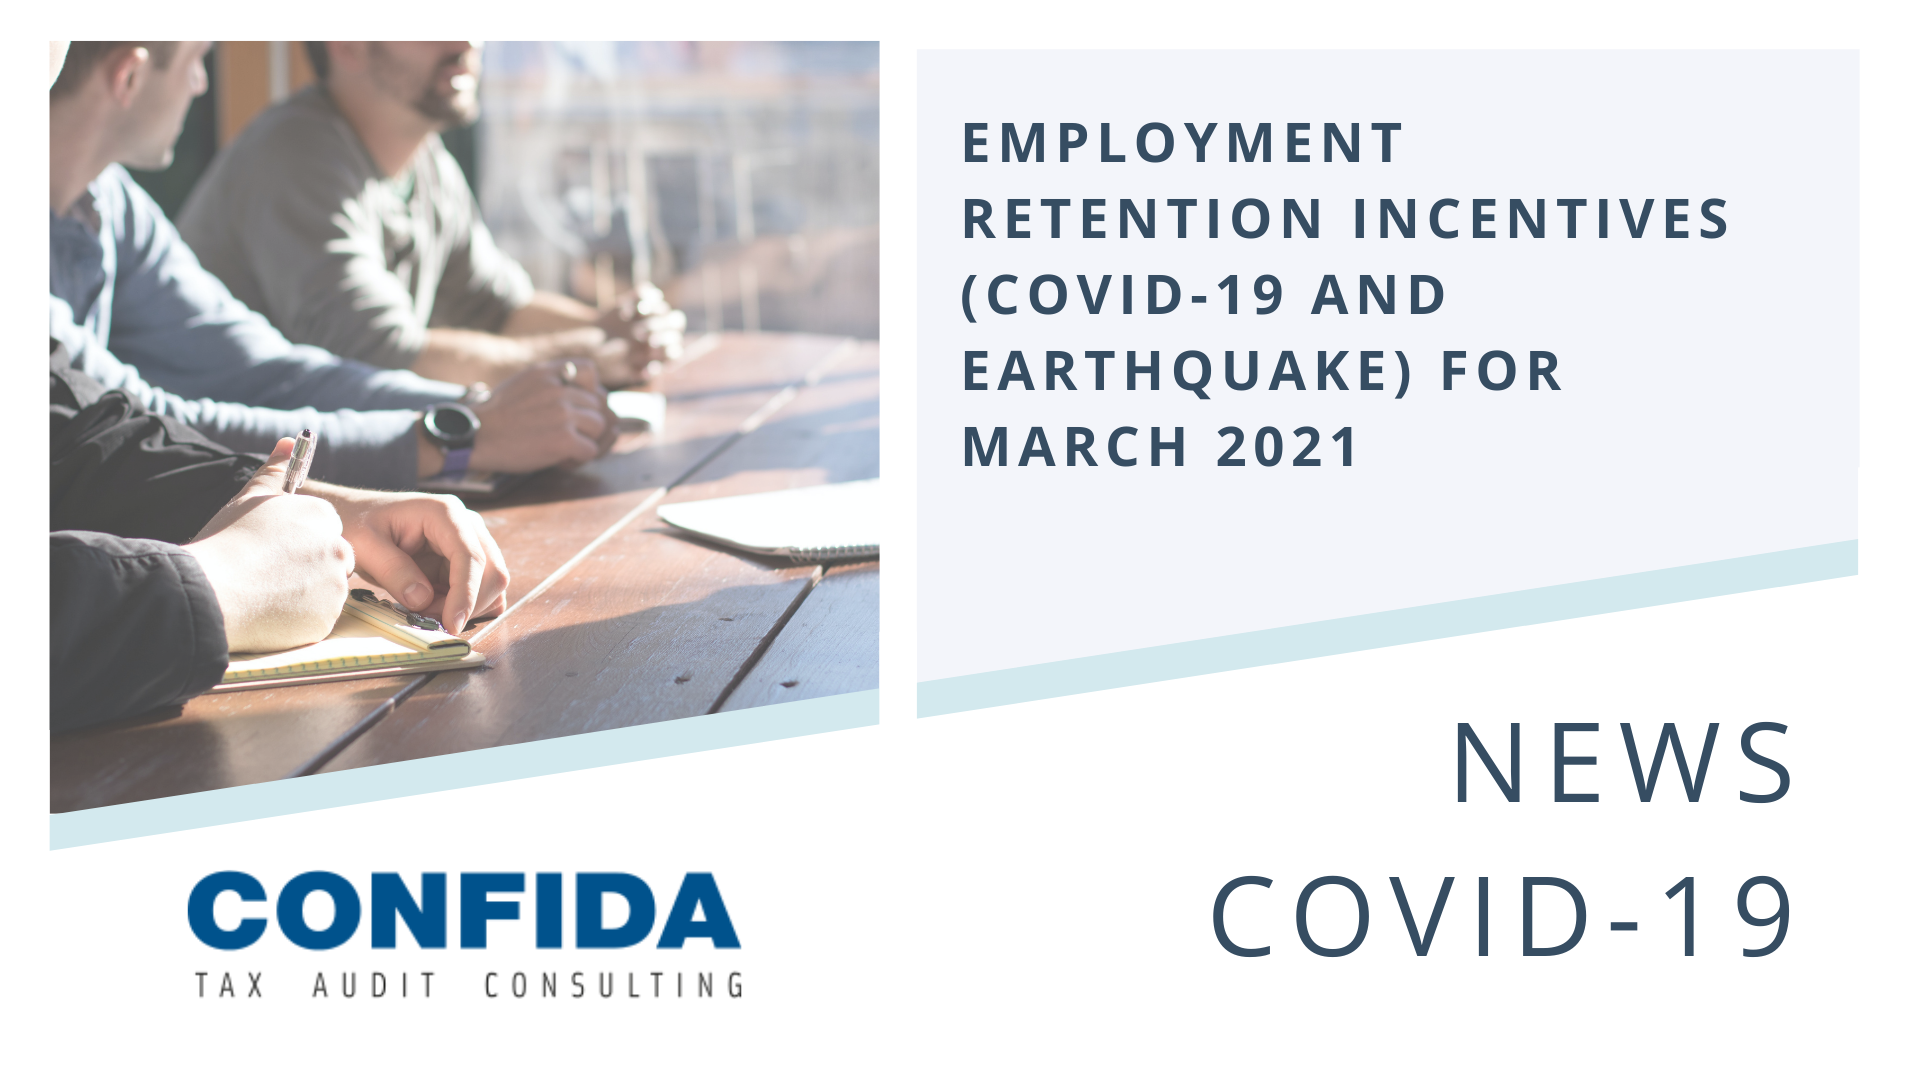 Employment Retention Incentives (COVID-19 and earthquake) for March 2021